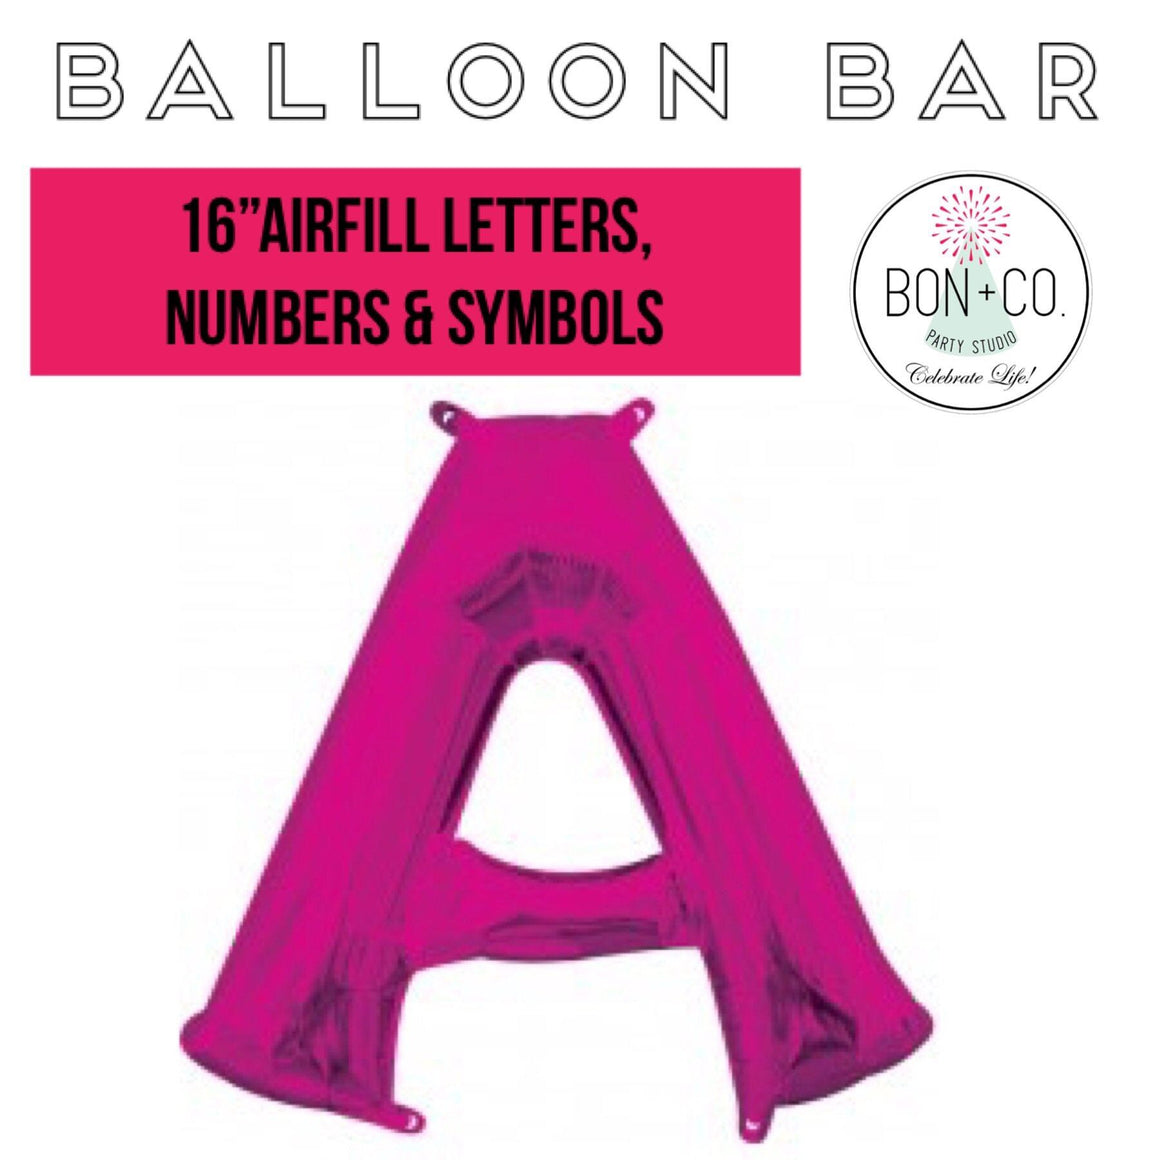 "BALLOON BAR - 16"" AIRFILL HOT PINK, Balloons, BETALLIC - Bon + Co. Party Studio"